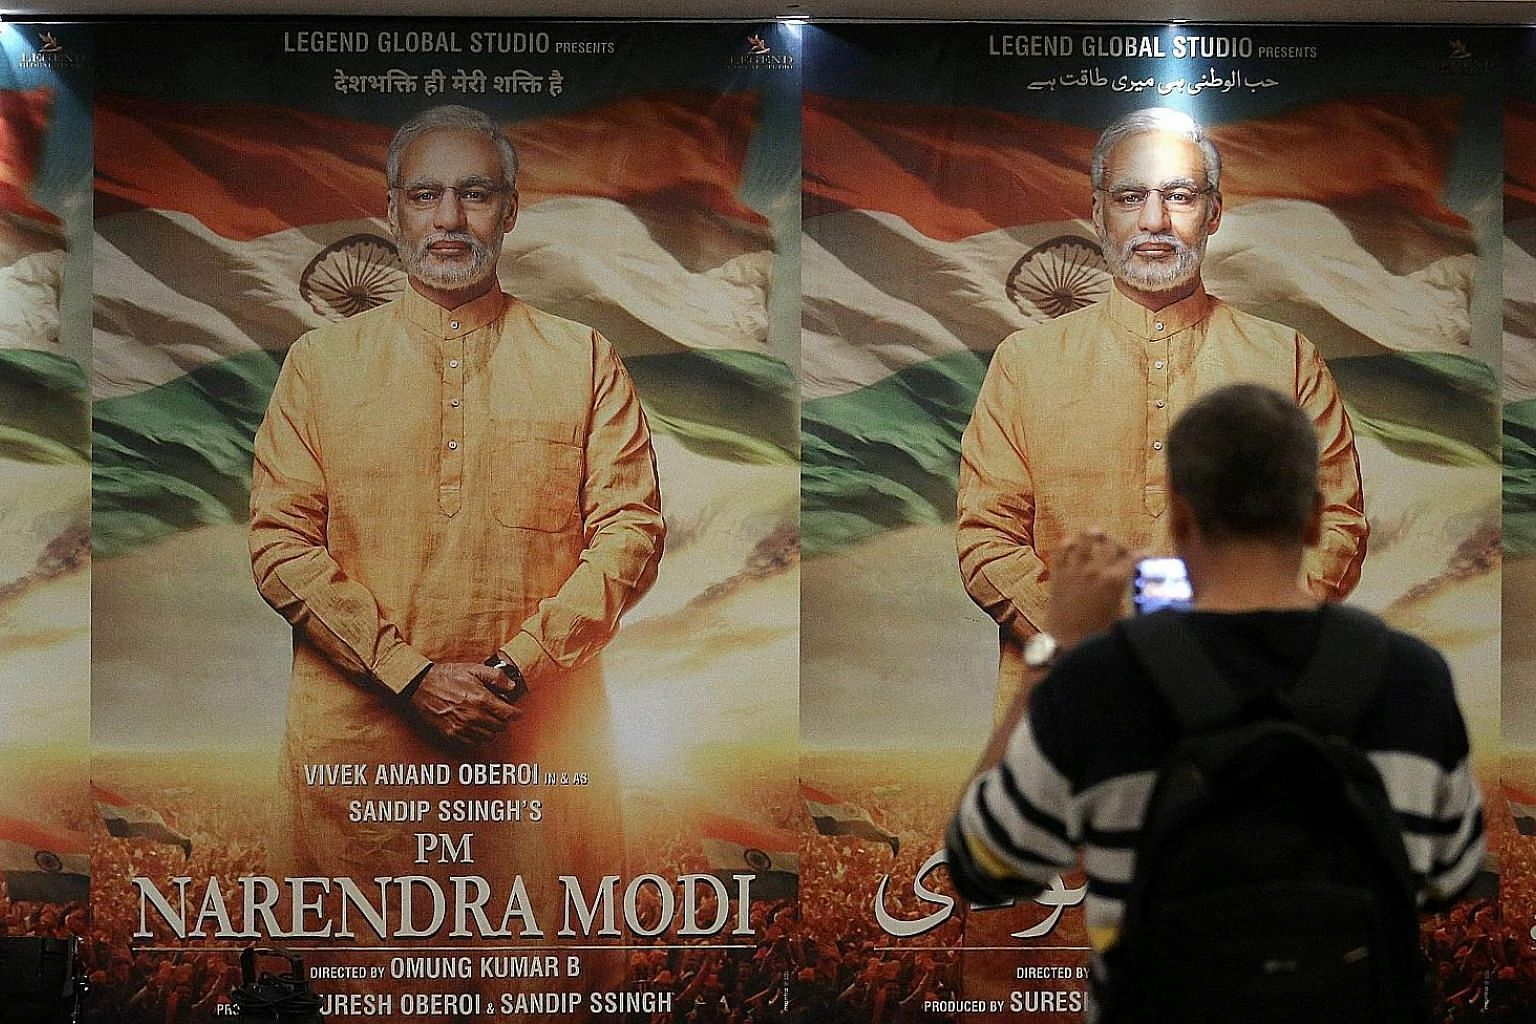 Posters of the film, PM Narendra Modi, in Mumbai. Over 300 million Indians are on WhatsApp and the ruling Bharatiya Janata Party is using it to wage one of the world's most sophisticated digital political campaigns, carried out by a vast army of volu